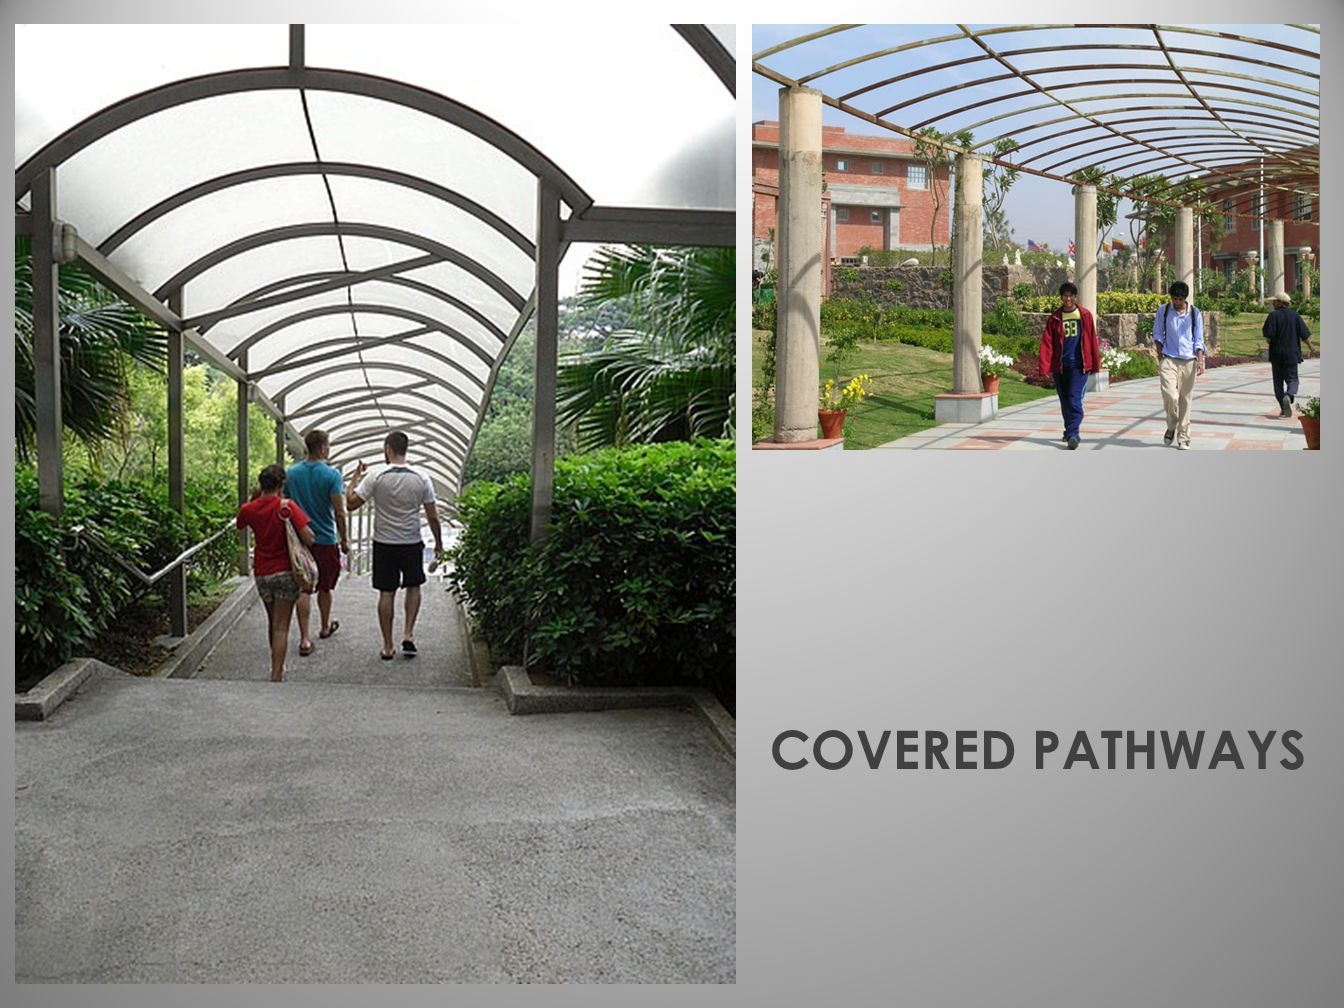 COVERED PATHWAYS